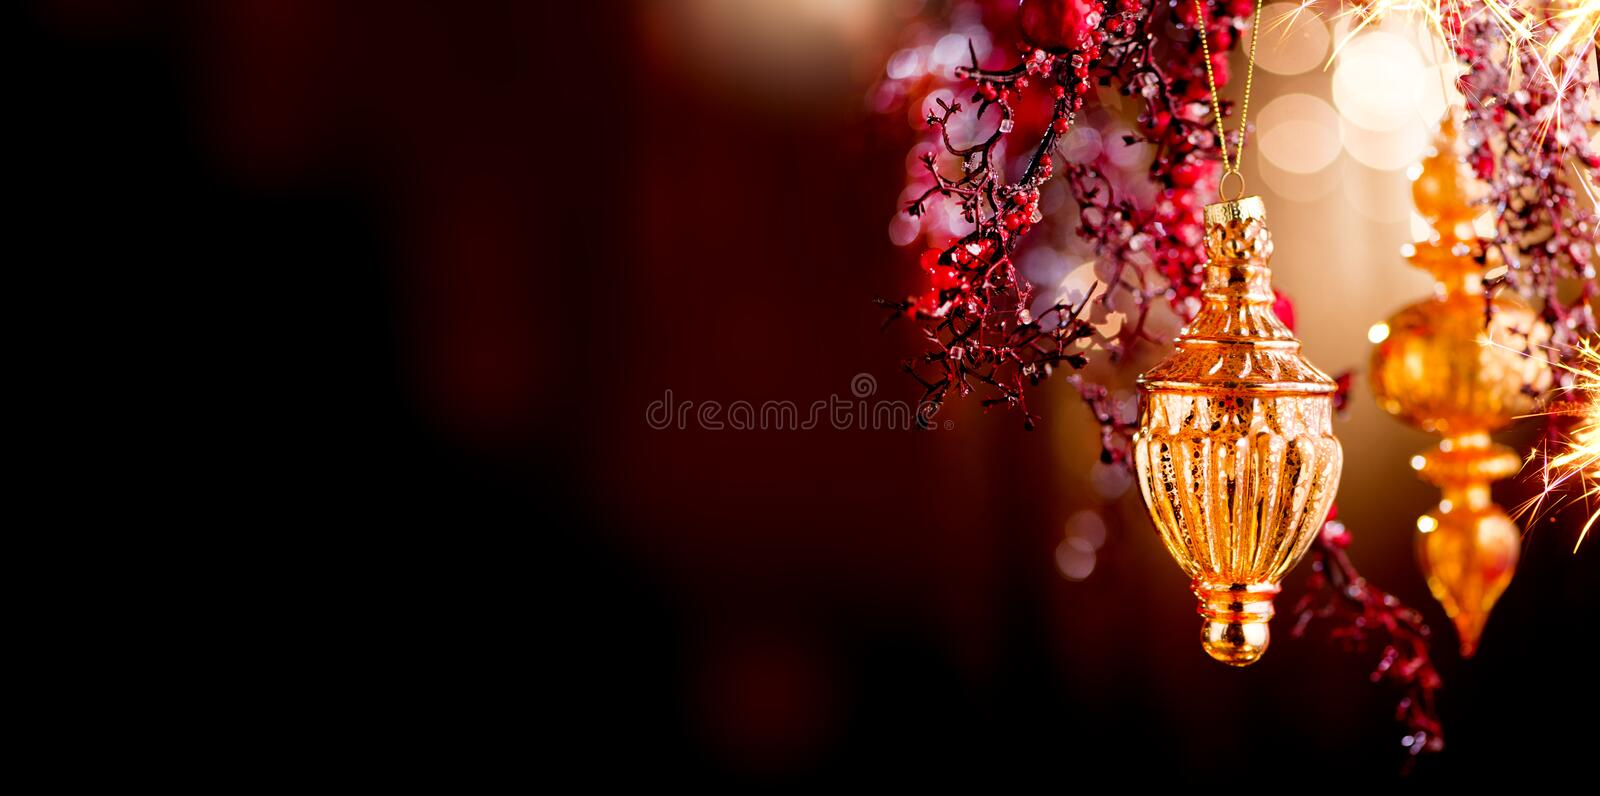 Christmas and New Year Golden Decoration. Abstract Blurred Bokeh Holiday Background with beautiful baubles and Blinking Garland. Christmas Tree Lights stock photography